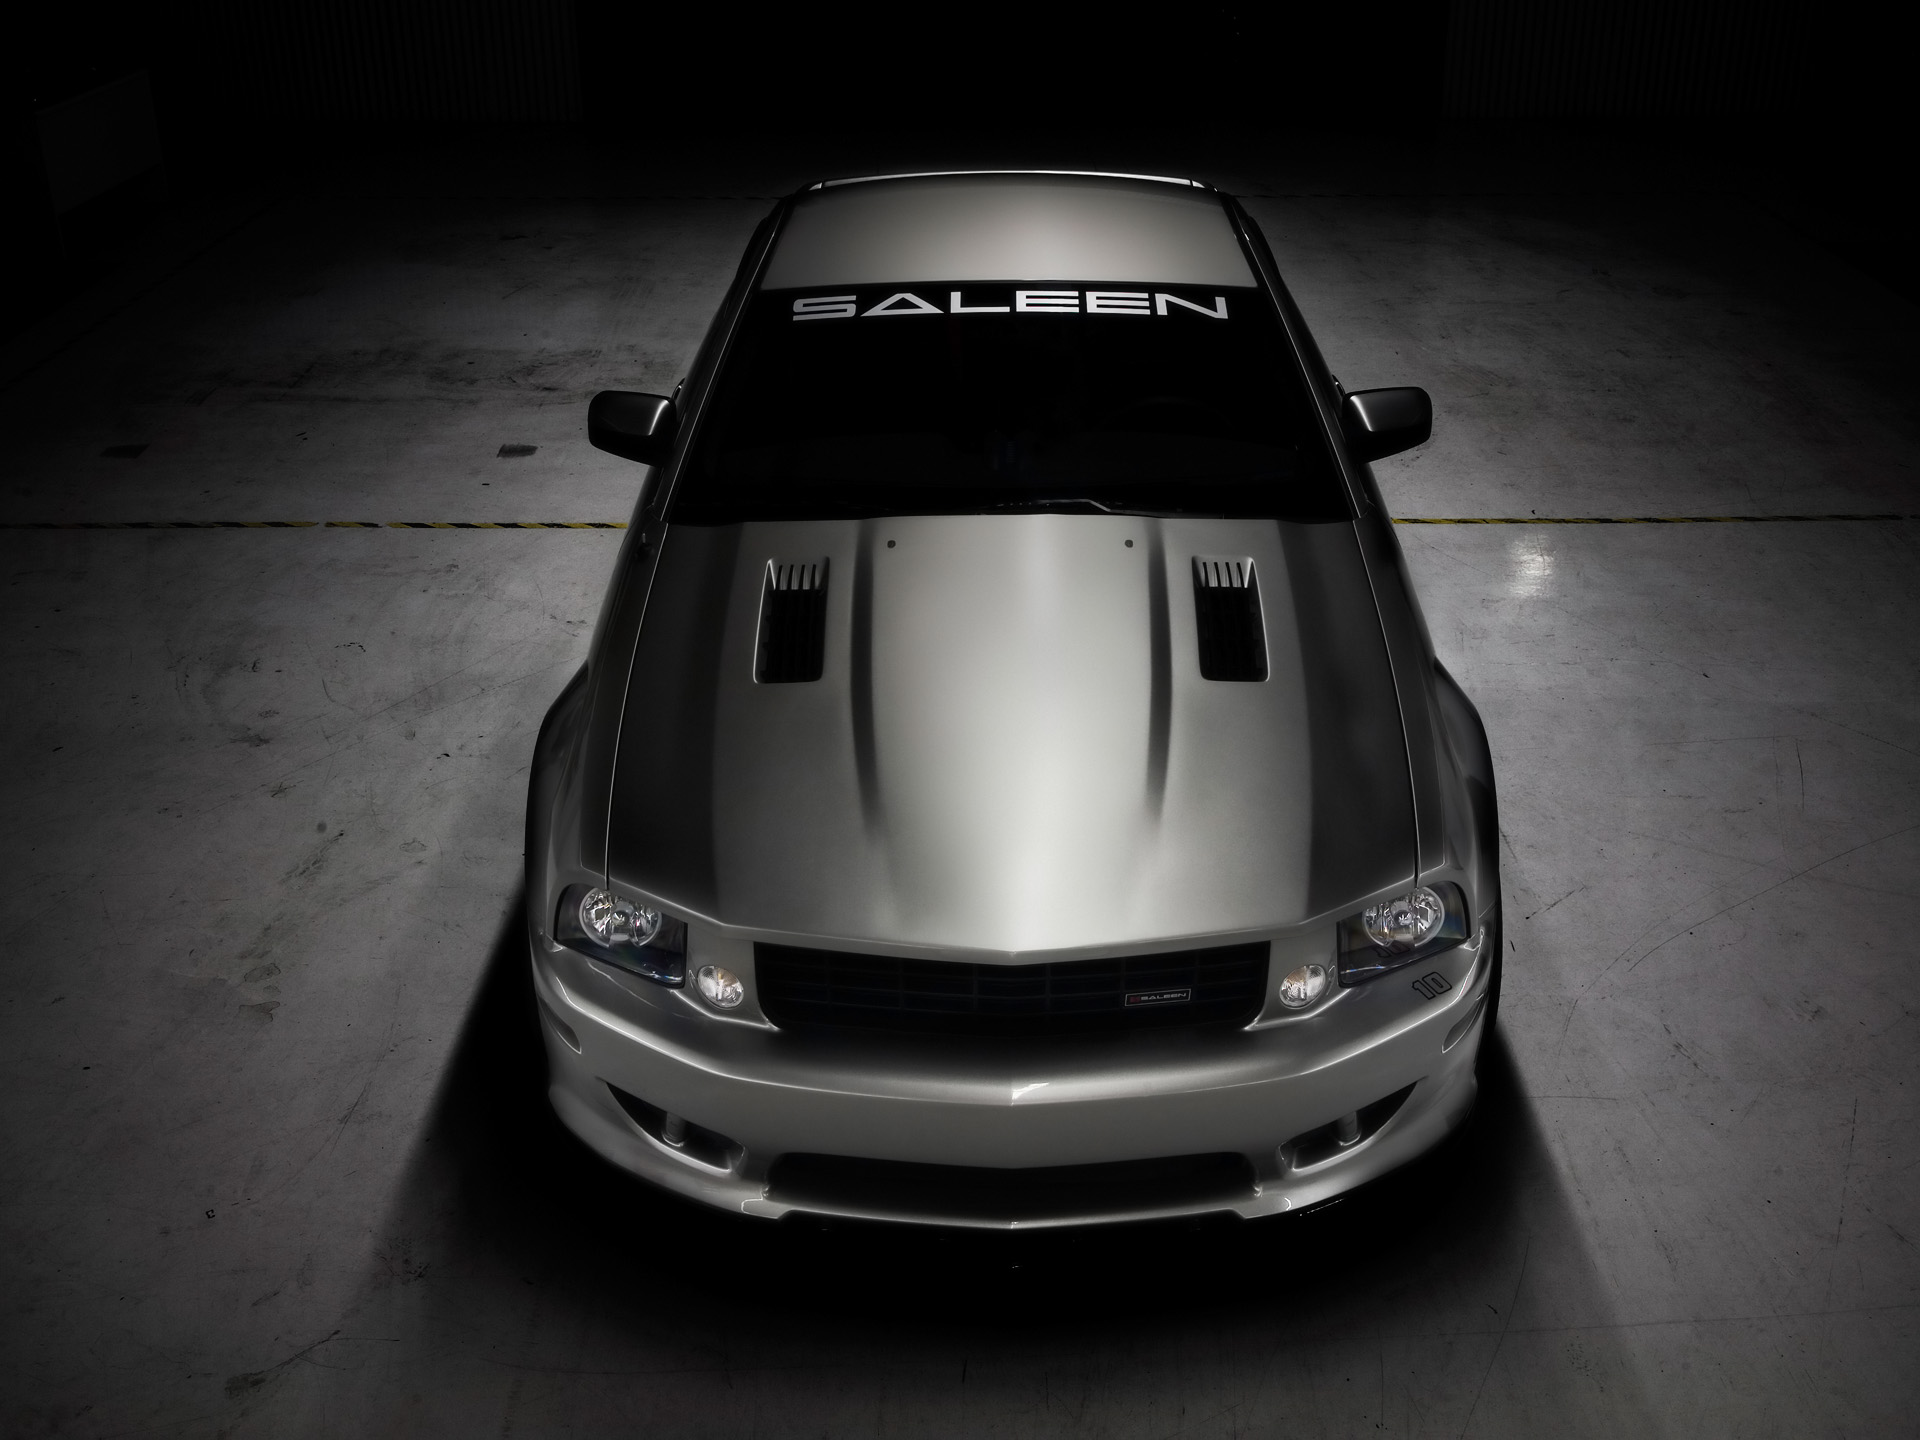 Saleen Mustang S302 Extreme photo 49640